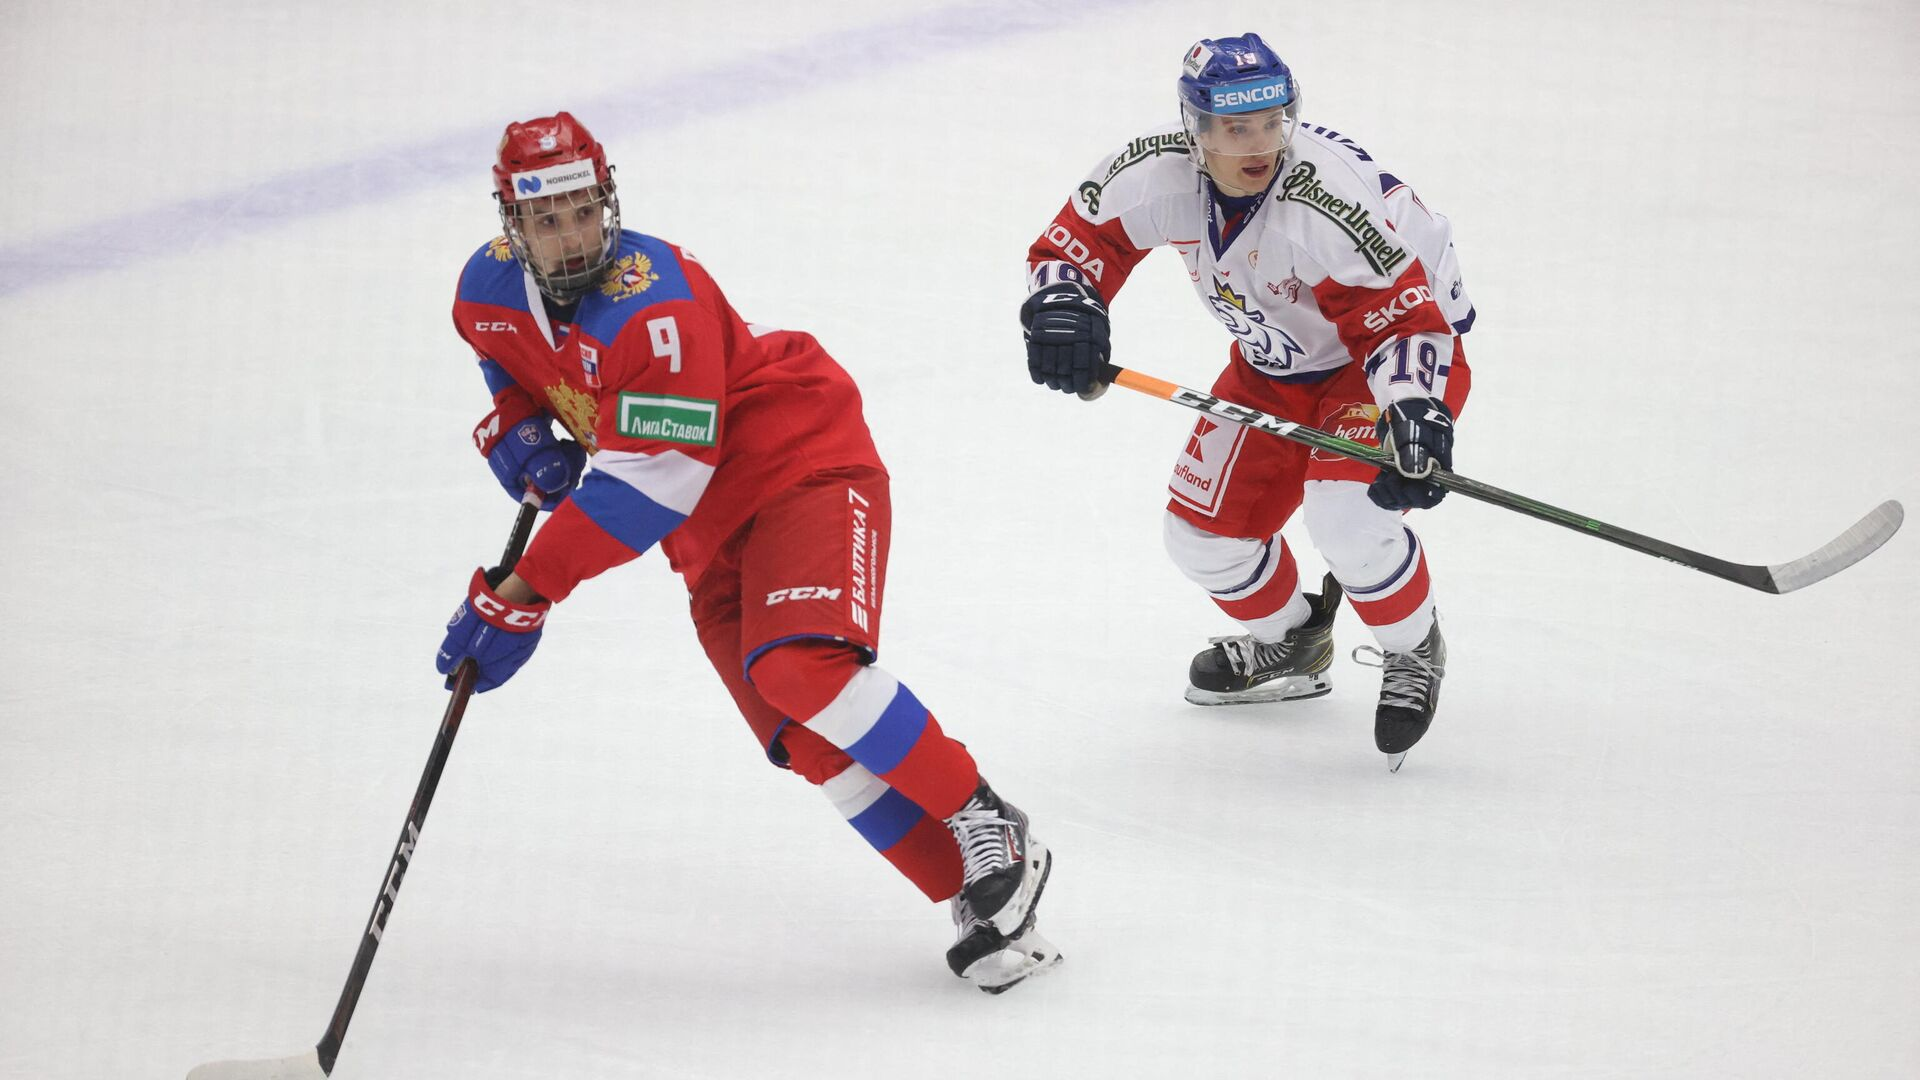 Russia's Nikita Chibrikov (L) and Czech Republic's Petr Kodytek  during Euro Hockey Tour between Russia and Czech Republic on February 14, 2021, at Malmoe Arena in Sweden. (Photo by Andreas HILLERGREN / TT NEWS AGENCY / AFP) / Sweden OUT - РИА Новости, 1920, 14.02.2021